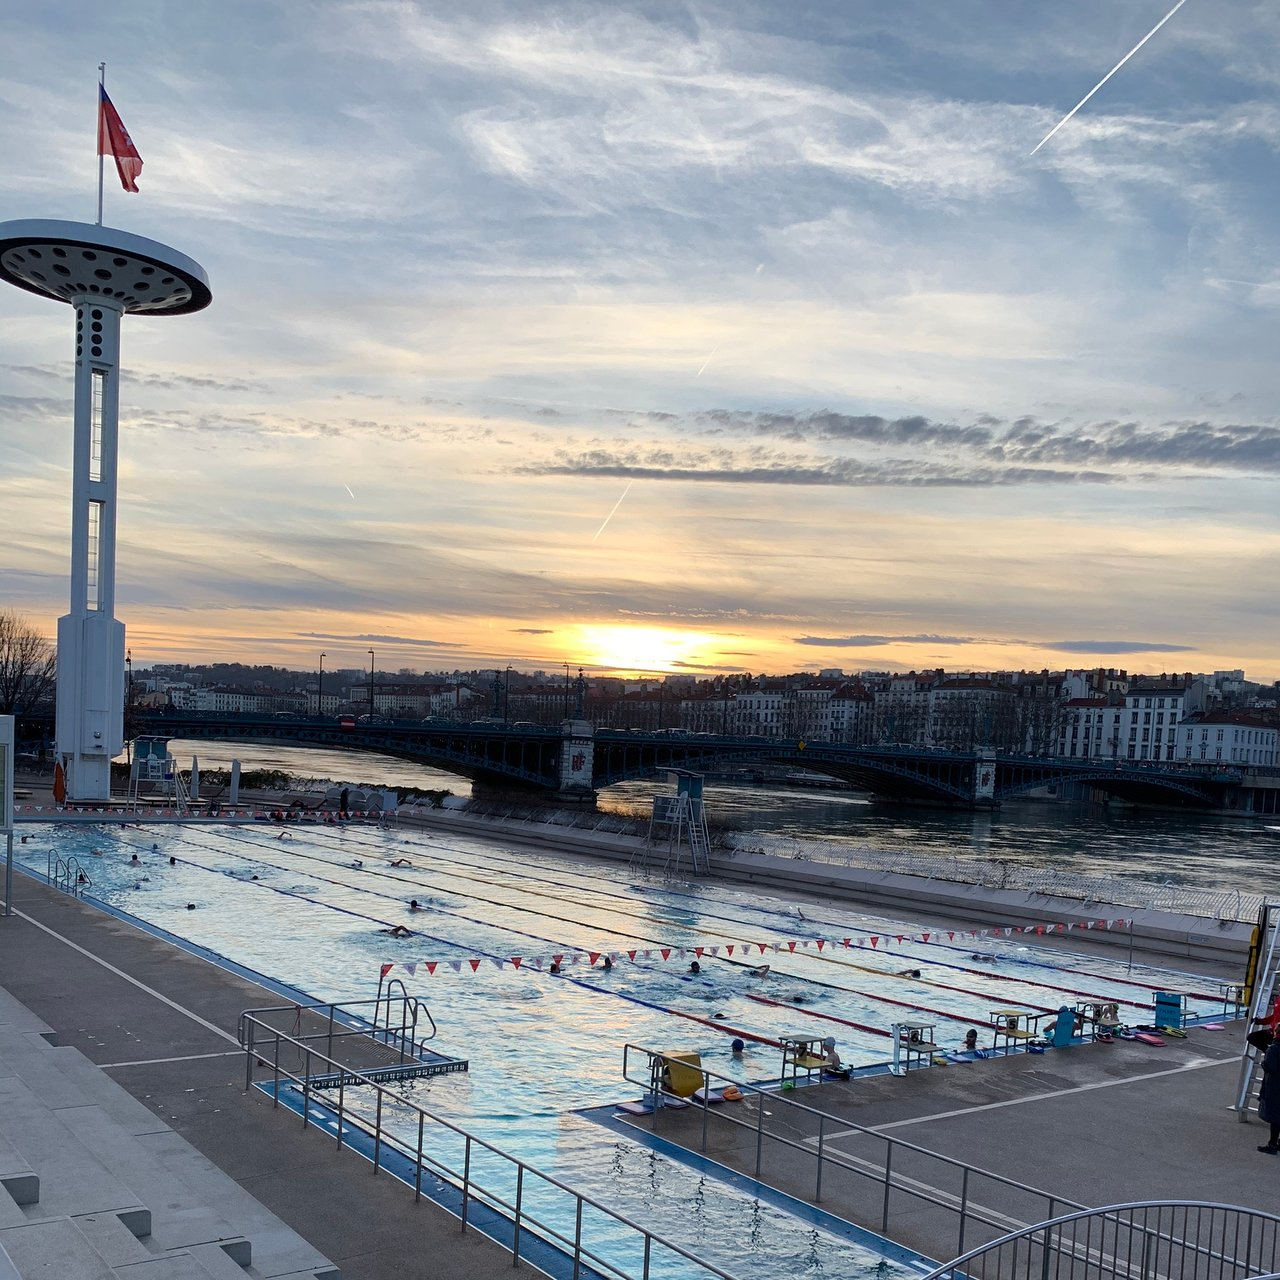 Piscine Du Rhone (Lyon) - 2020 All You Need To Know Before ... destiné Piscine Lyon 7